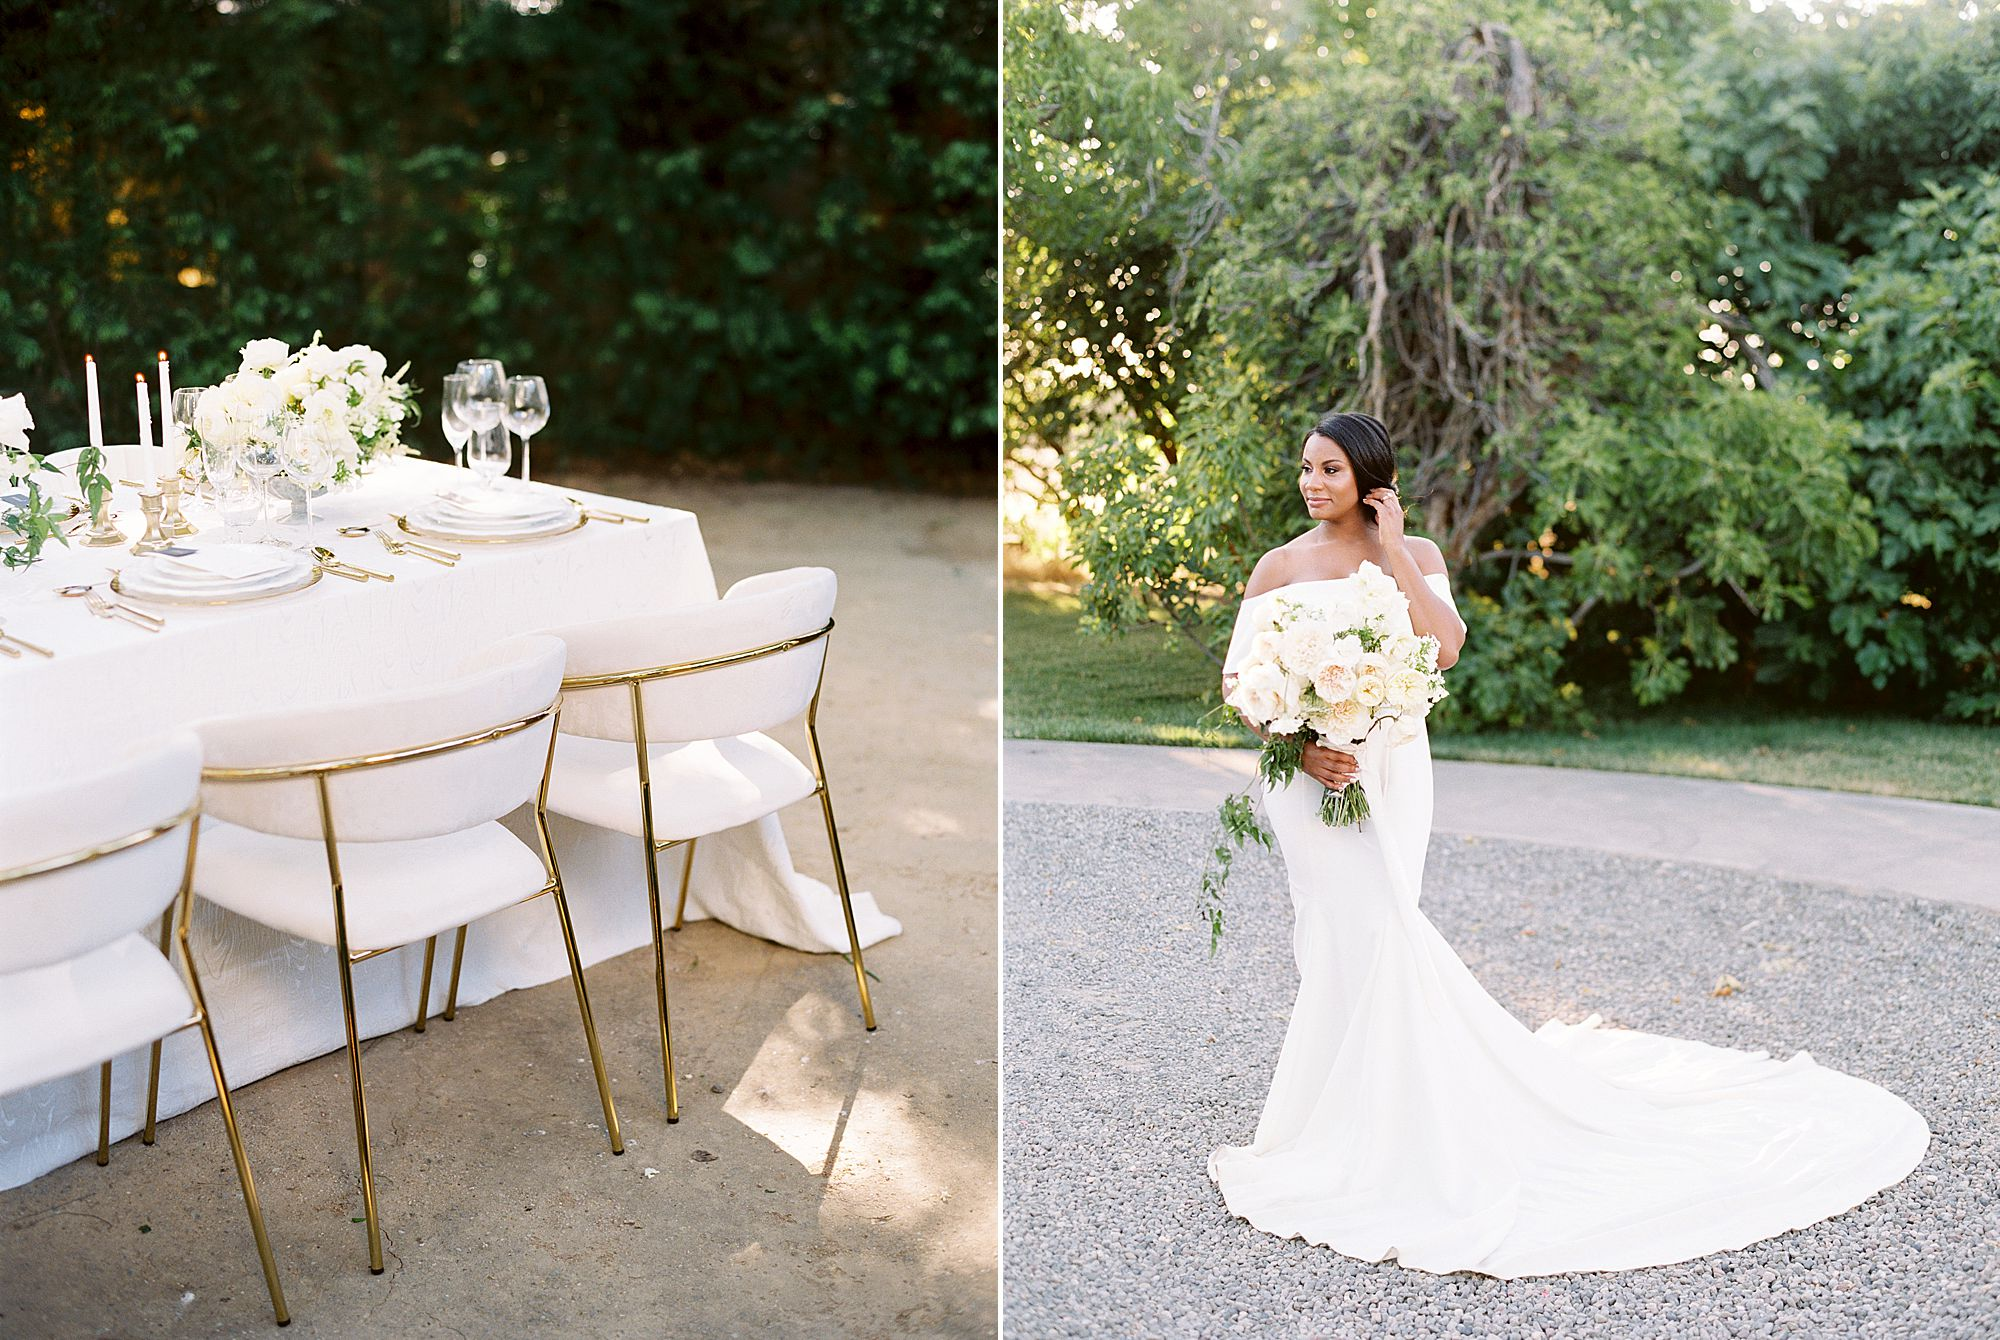 Park Winters Micro-Wedding Inspiration on Style Me Pretty - Stephanie Teague Events - Ashley Baumgartner - Park Winters Wedding - Black Tie Wedding - Micro-Wedding Sacramento Photographer_0061.jpg